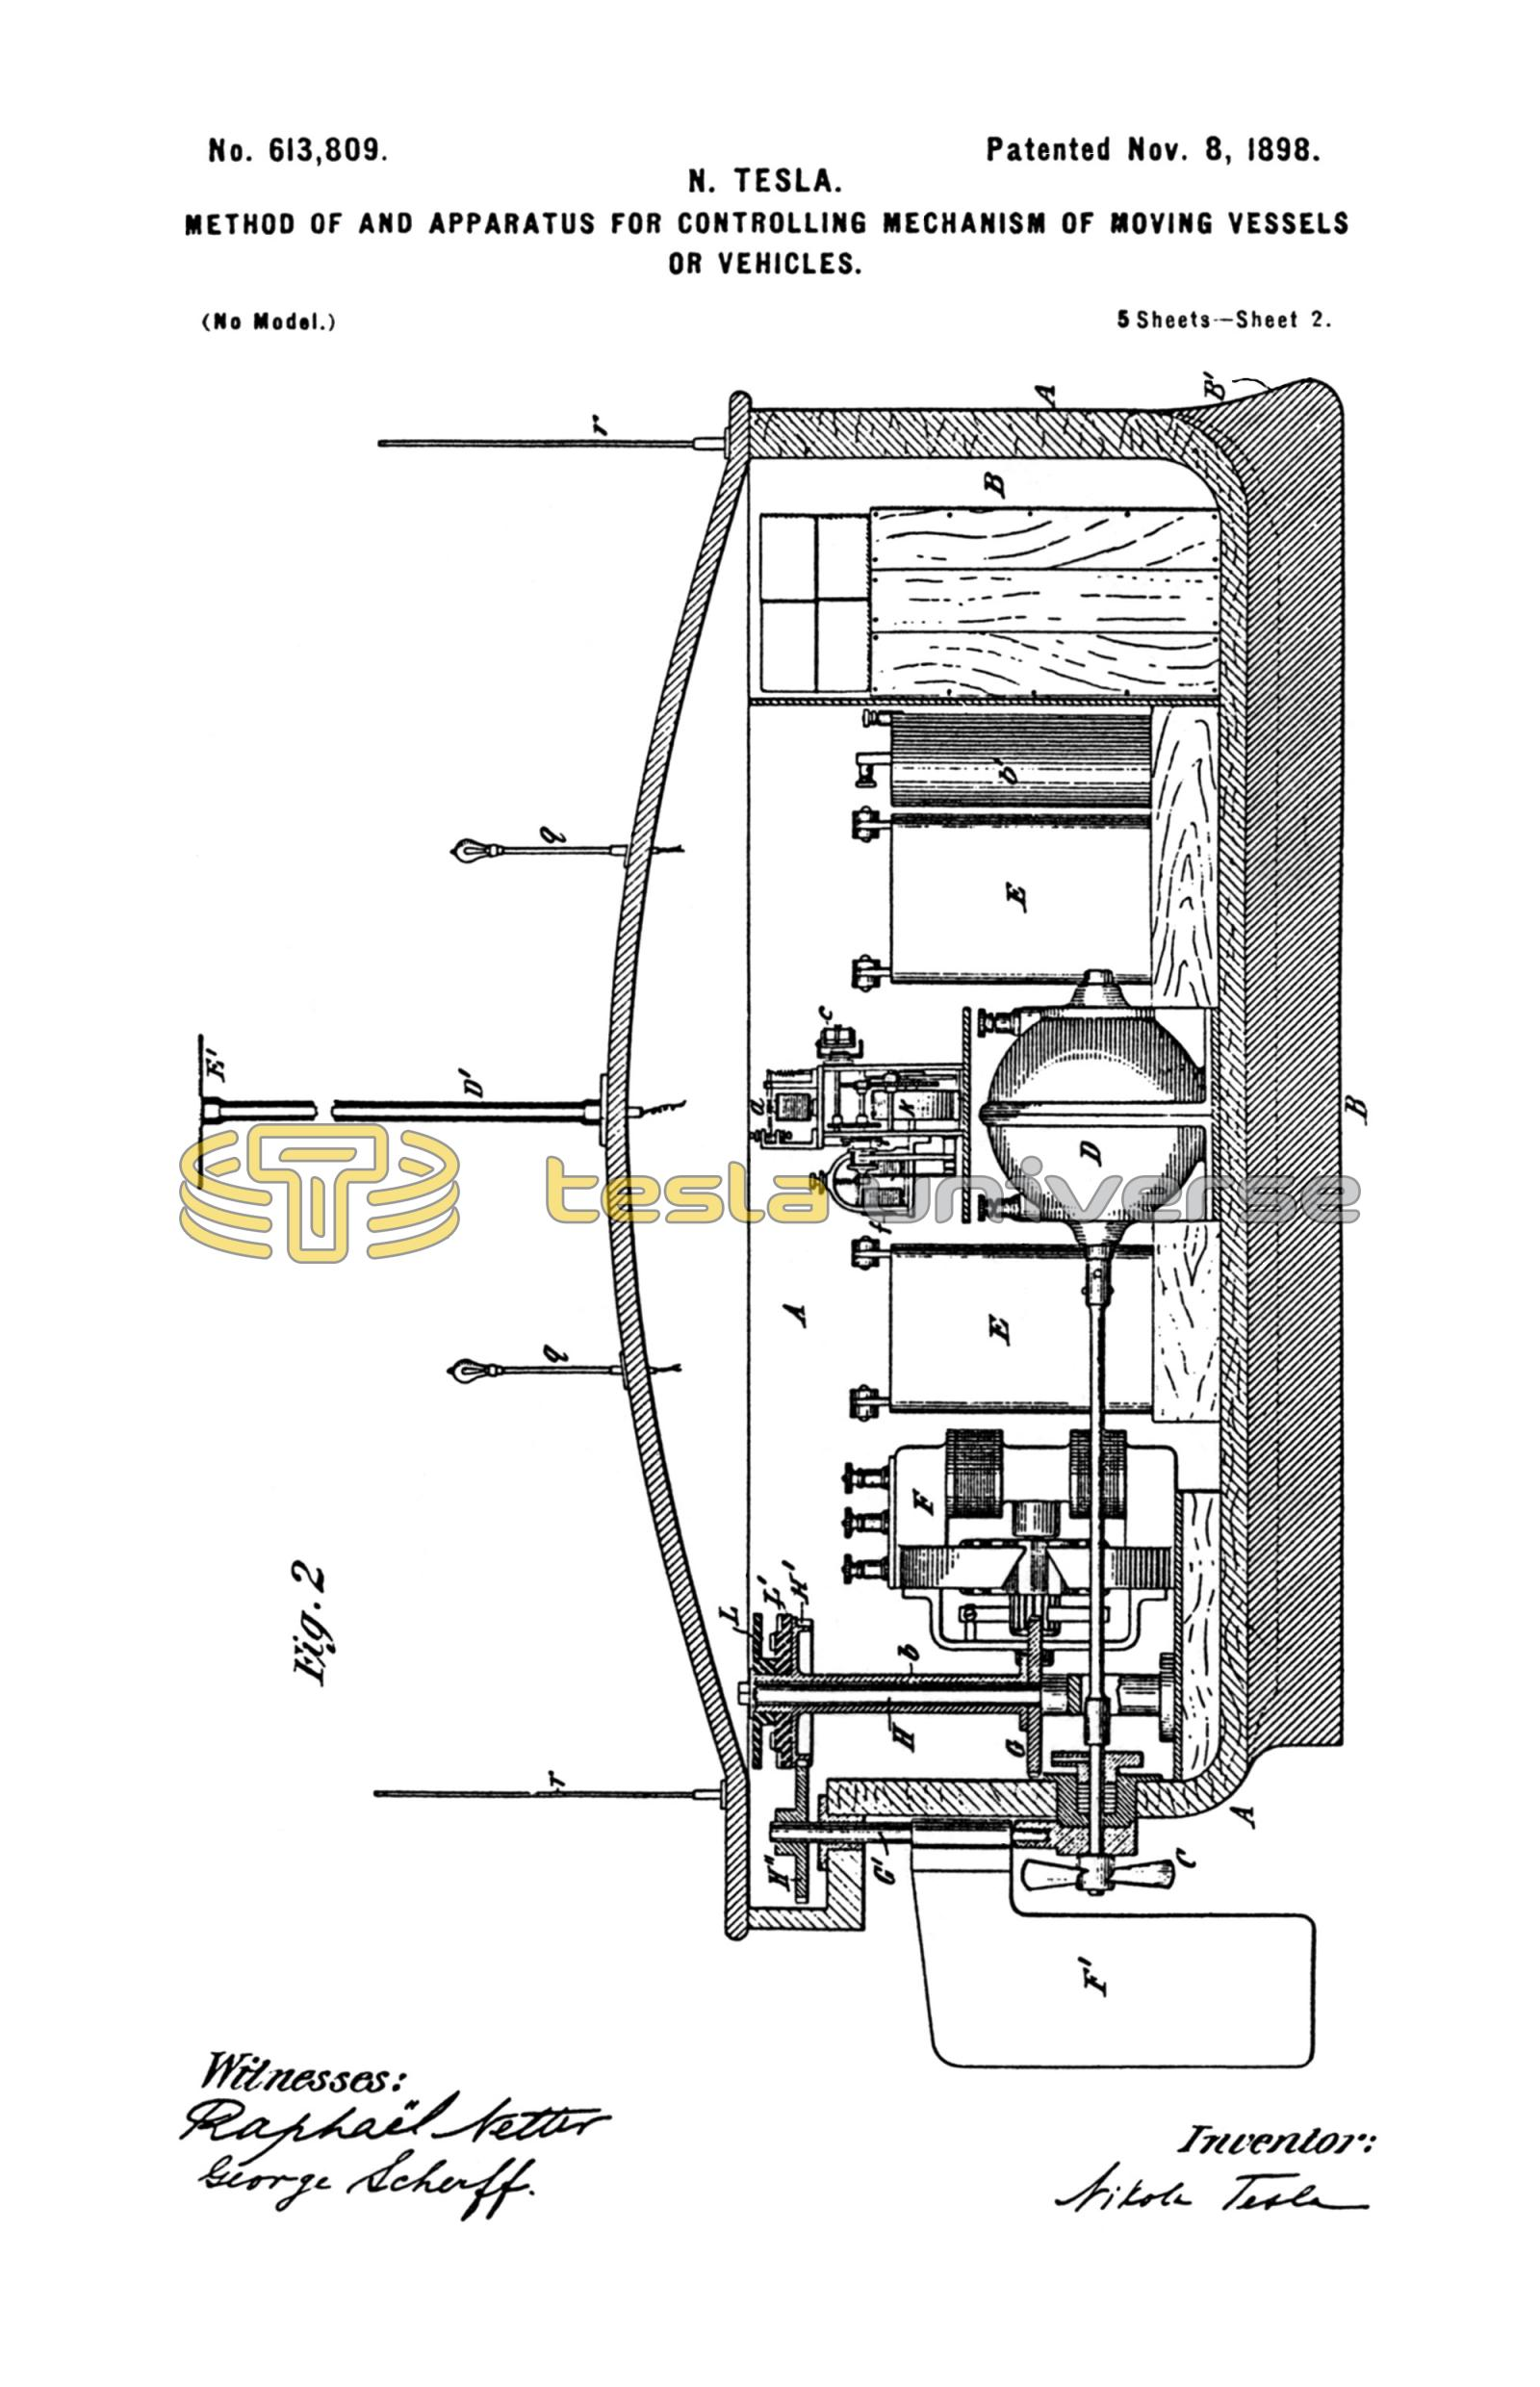 Nikola Tesla U S  Patent 613,809 - Method of and Apparatus for